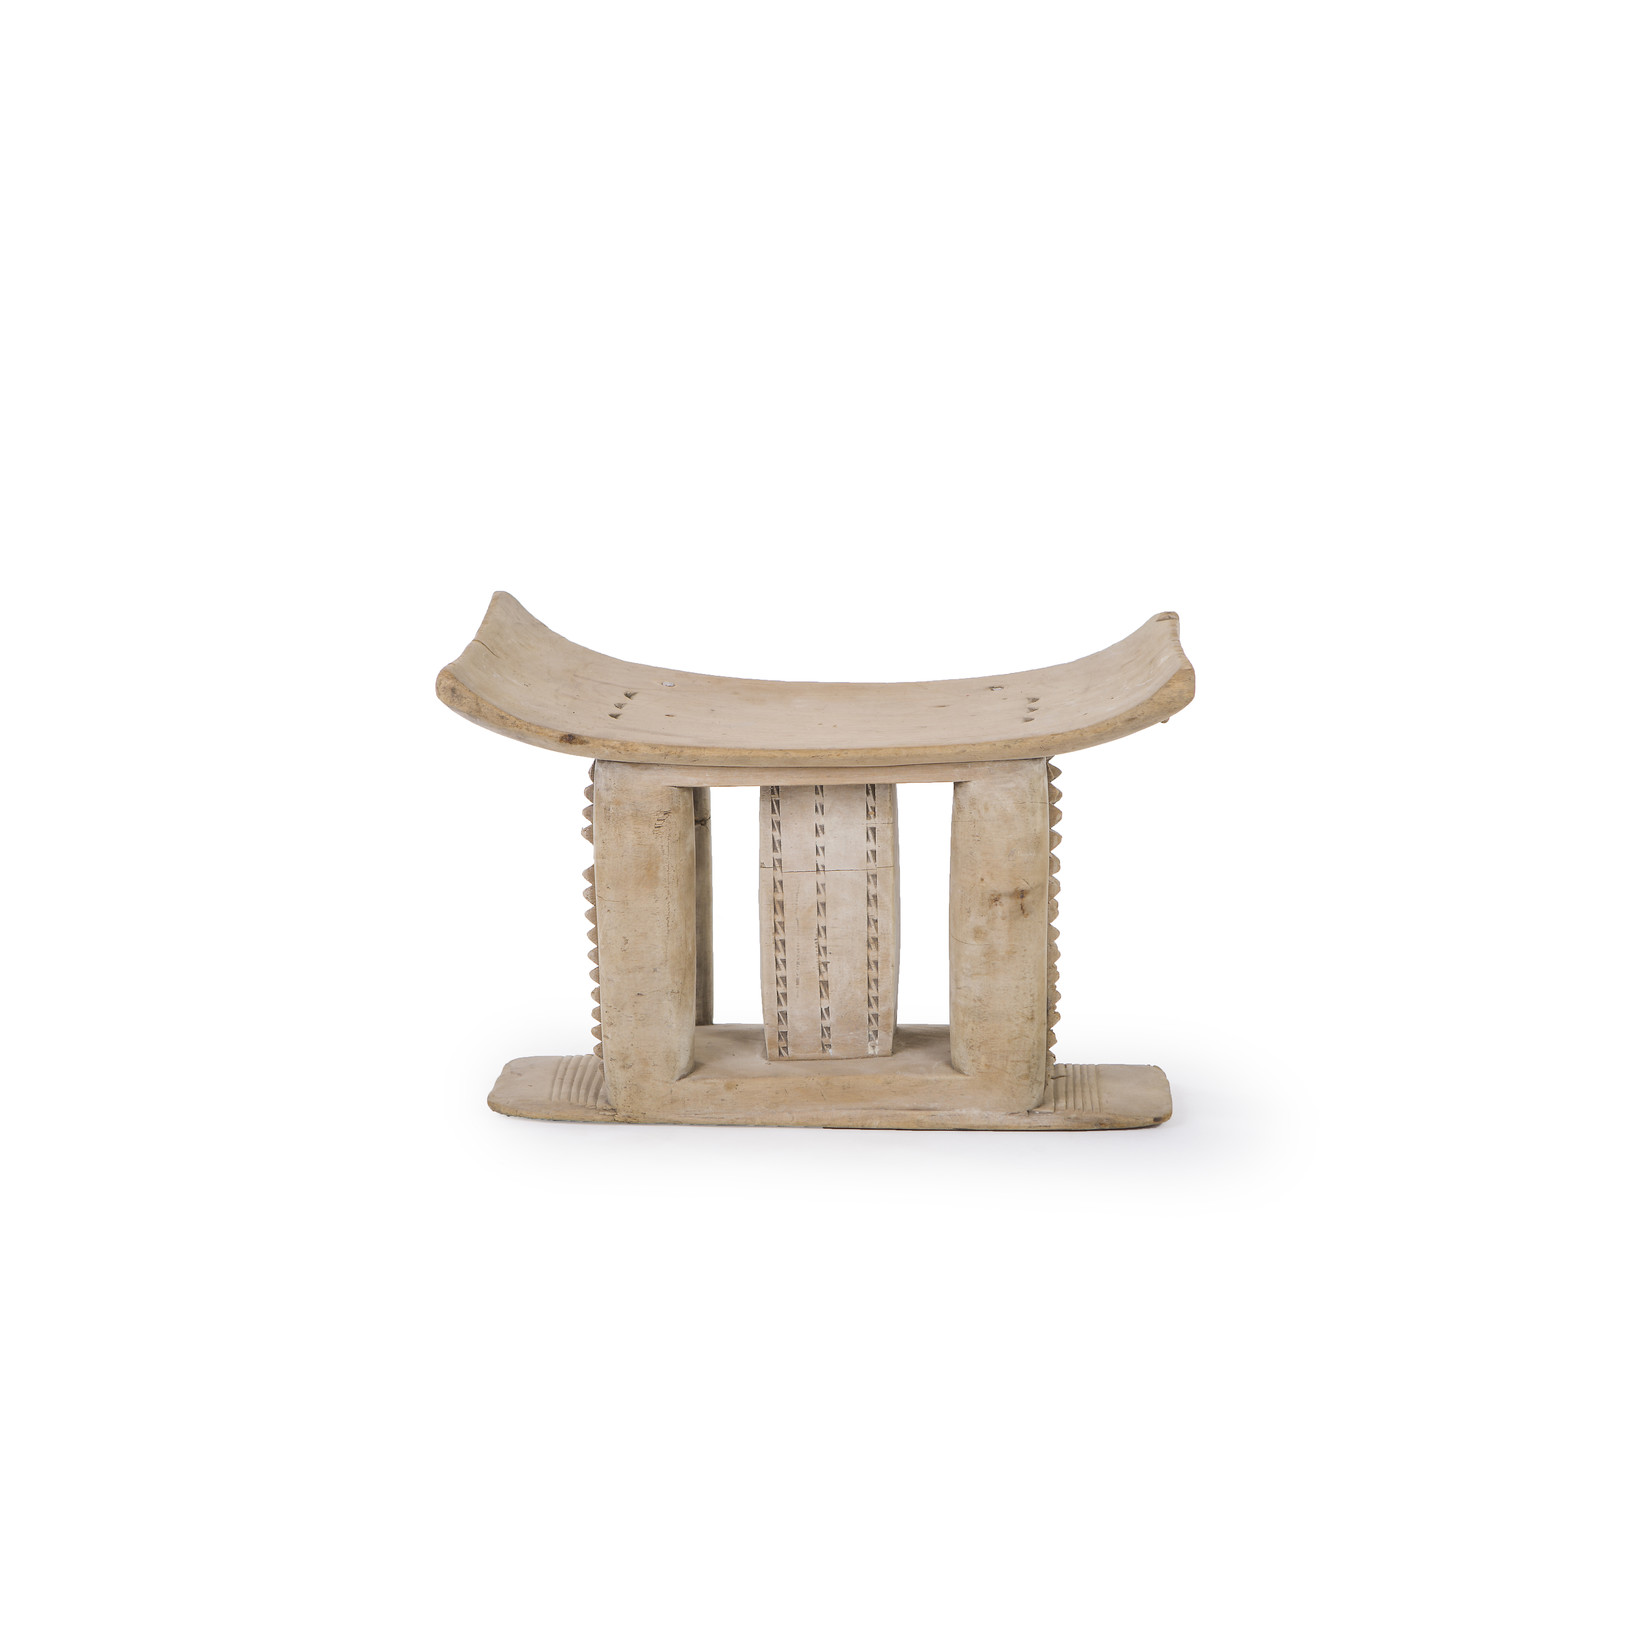 Authentic Ashanti stool from Ghana - Traditional handcarved African stools